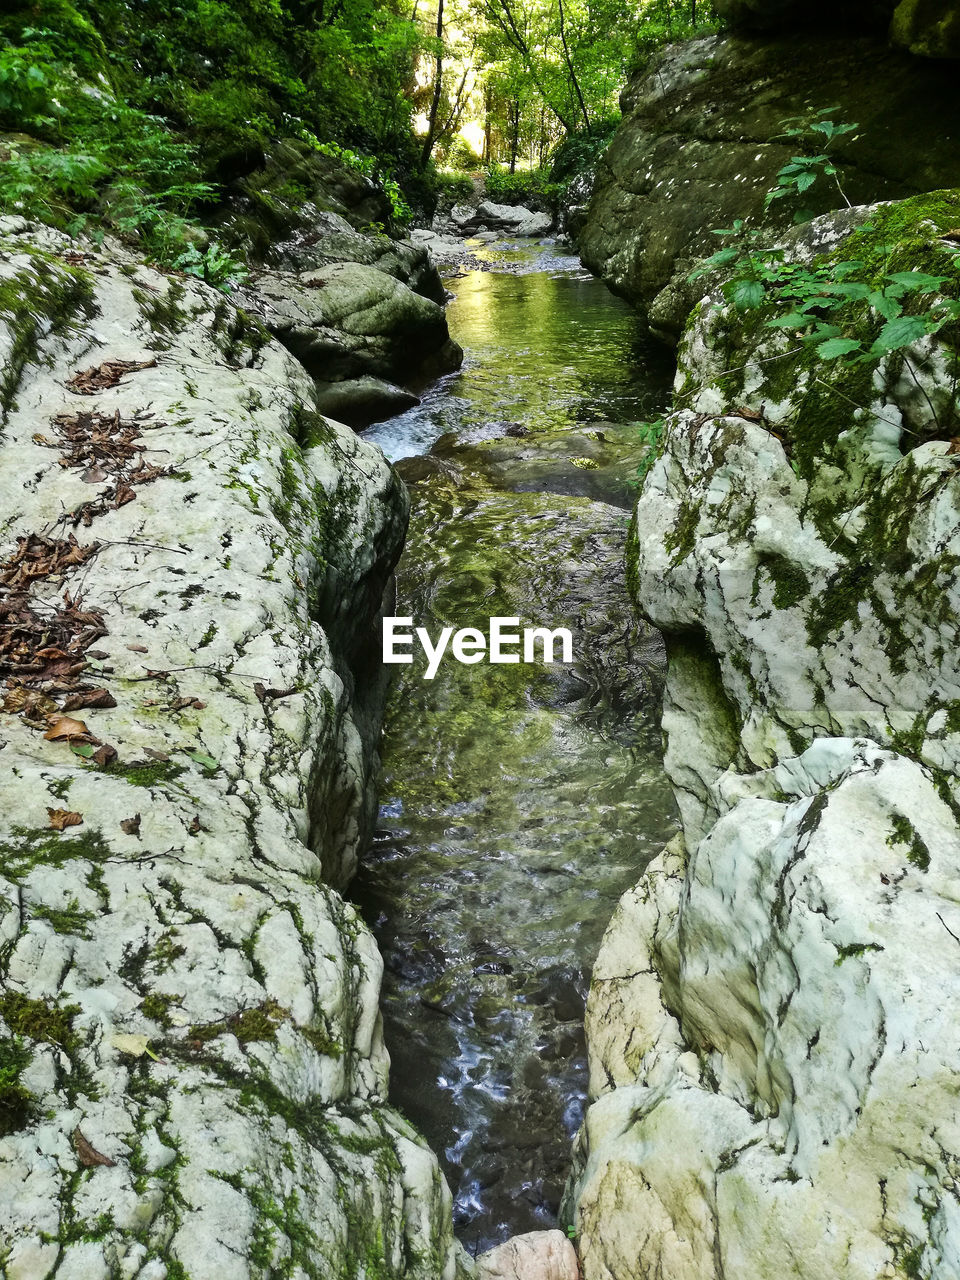 Gorge Green Color Klamm Natural Beauty Wonders Of Nature Beauty In Nature Flowing Flowing Water Forest Geology Landscape Nature No People Outdoors Ravine River Rocks Scenics - Nature Stream - Flowing Water Water